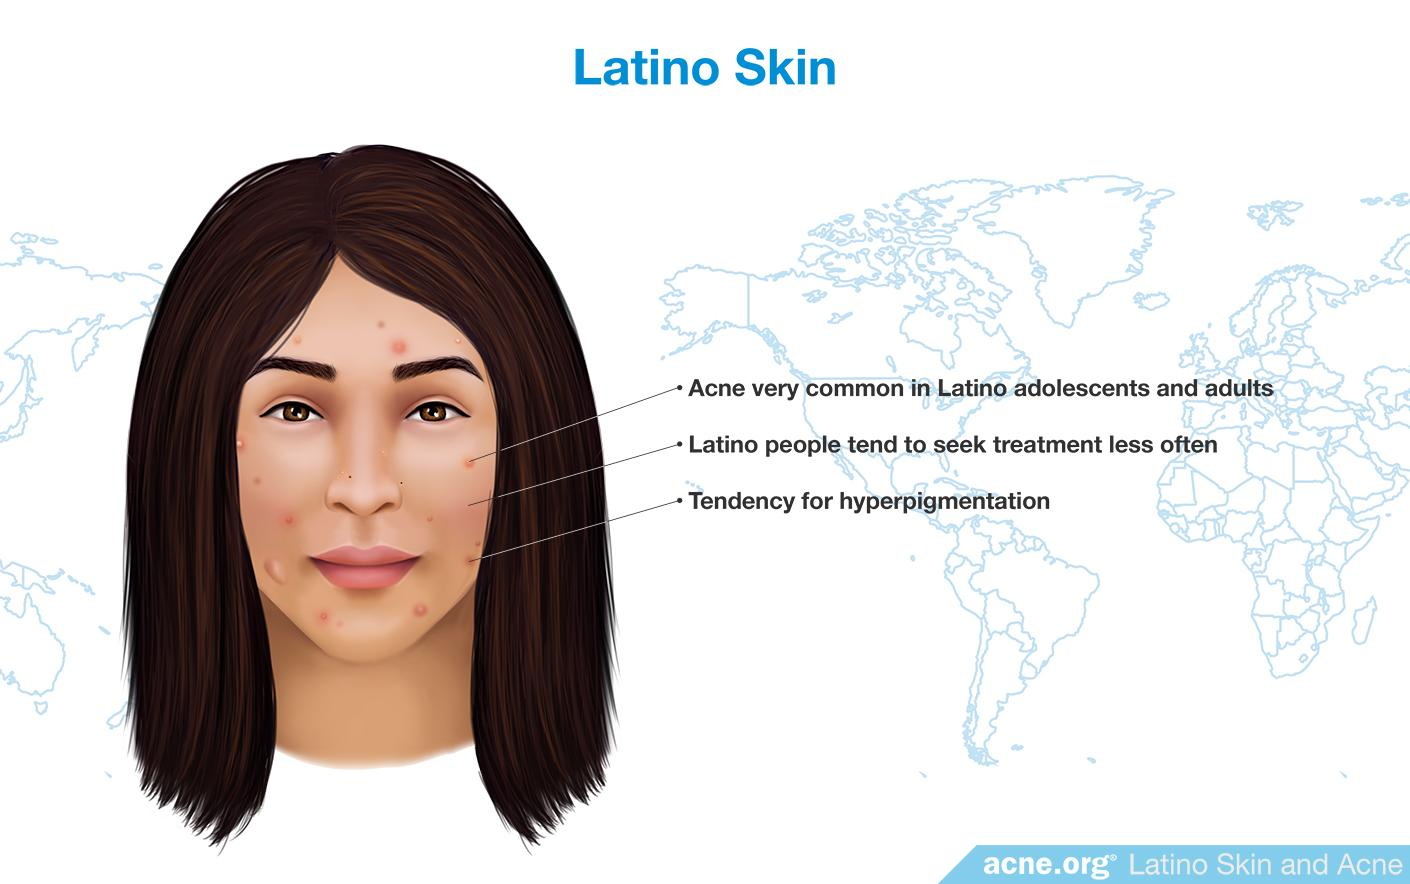 Latino Skin and Acne